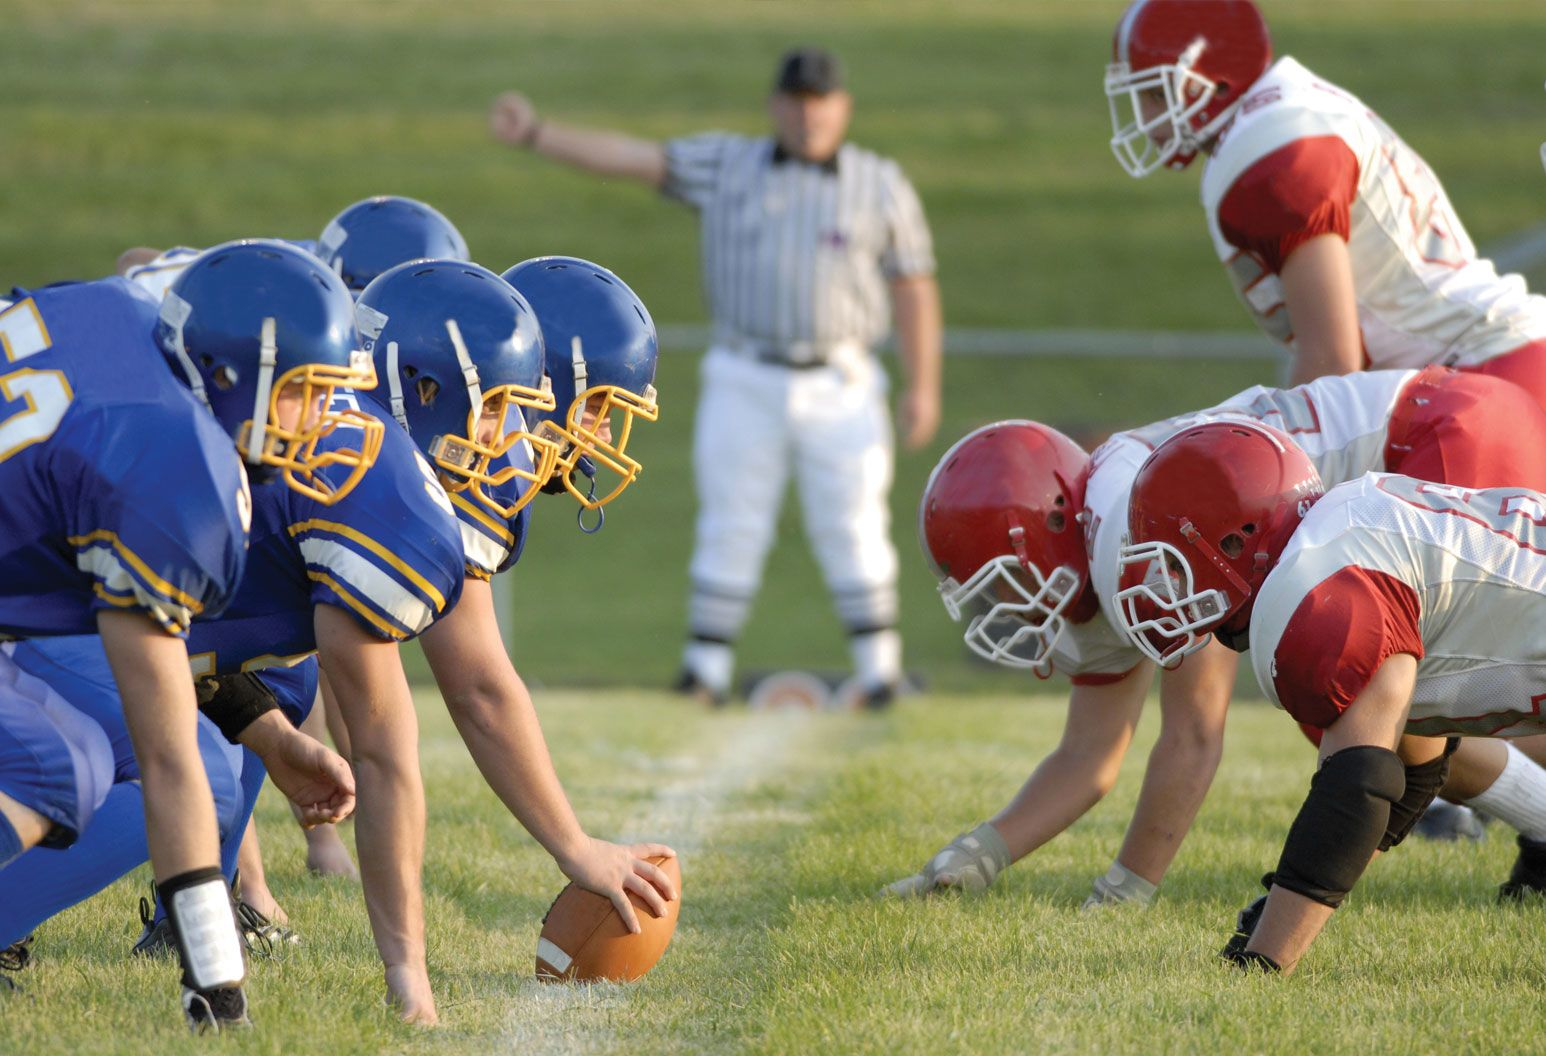 Two football teams face each other, lined up to snap the ball. One team wears blue and gold uniform and the other wears red and white. A referee is in the background with his arm up.